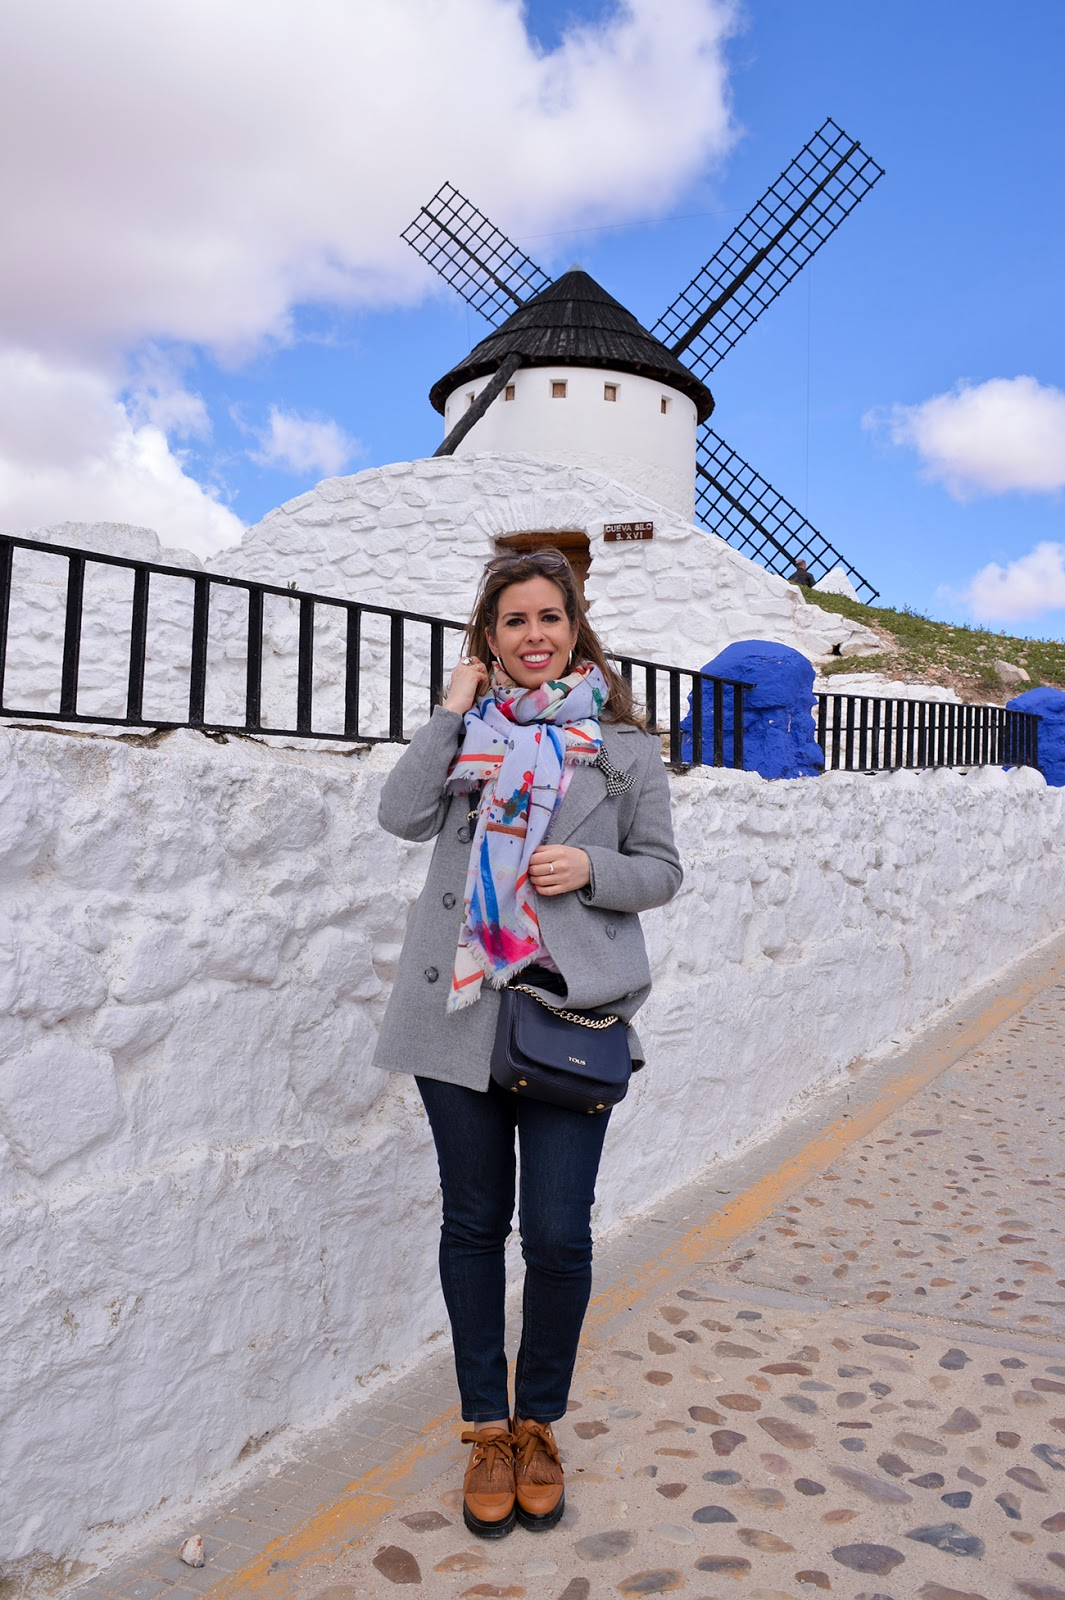 Chasing Windmills: A Road Trip Through La Mancha